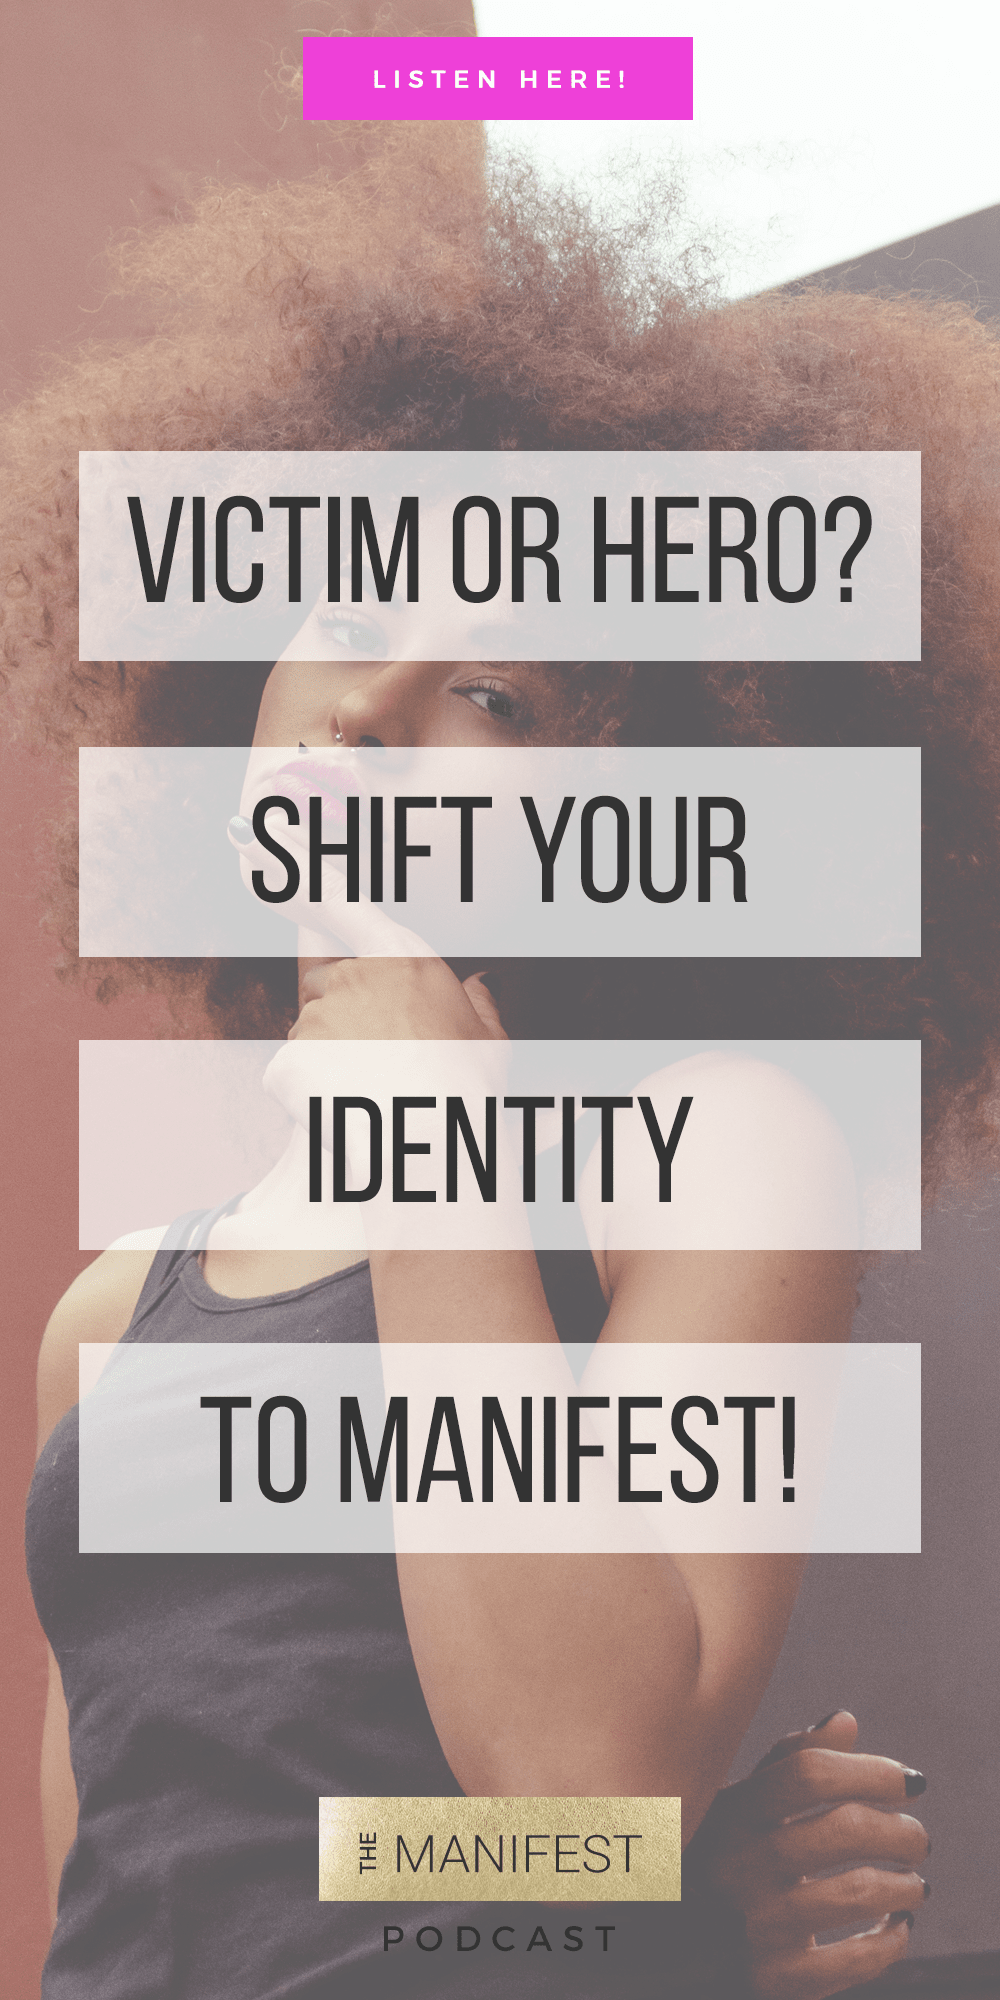 Episode 7: Victim or Hero? The Identity Shift You Need To Manifest